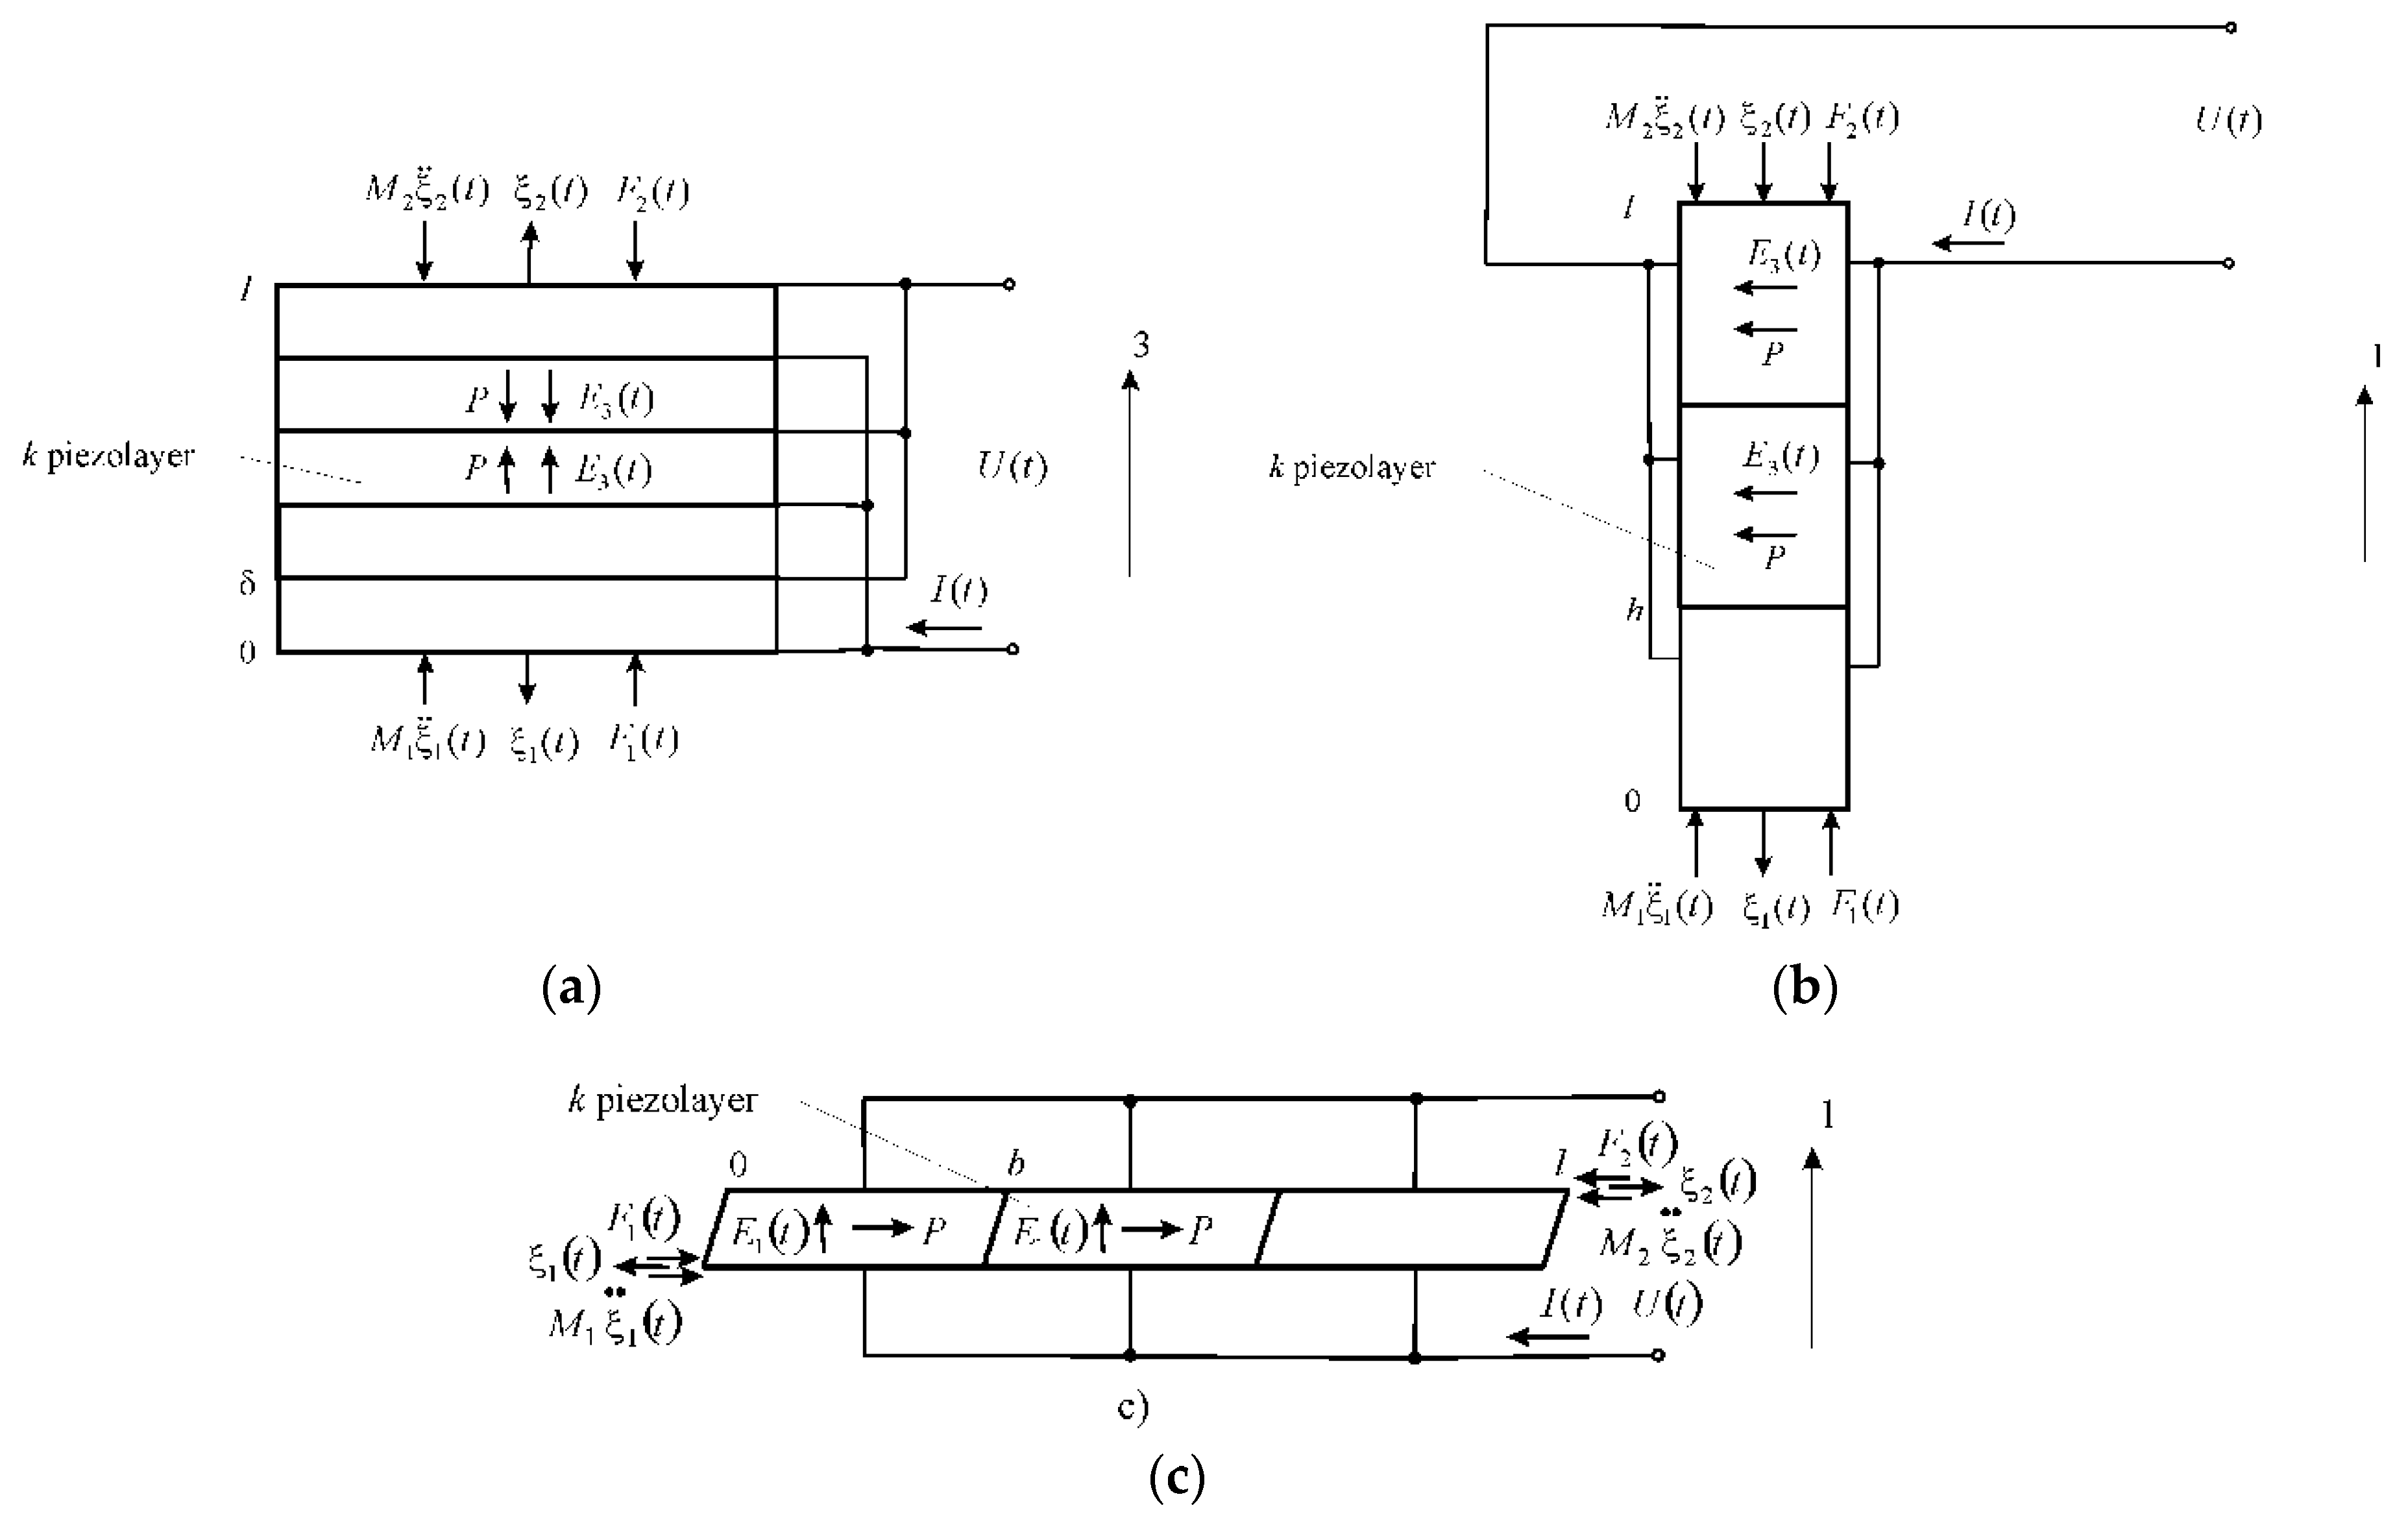 Actuators | Free Full-Text | Structural-Parametric Model and Diagram of a  Multilayer Electromagnetoelastic Actuator for Nanomechanics | HTMLMDPI